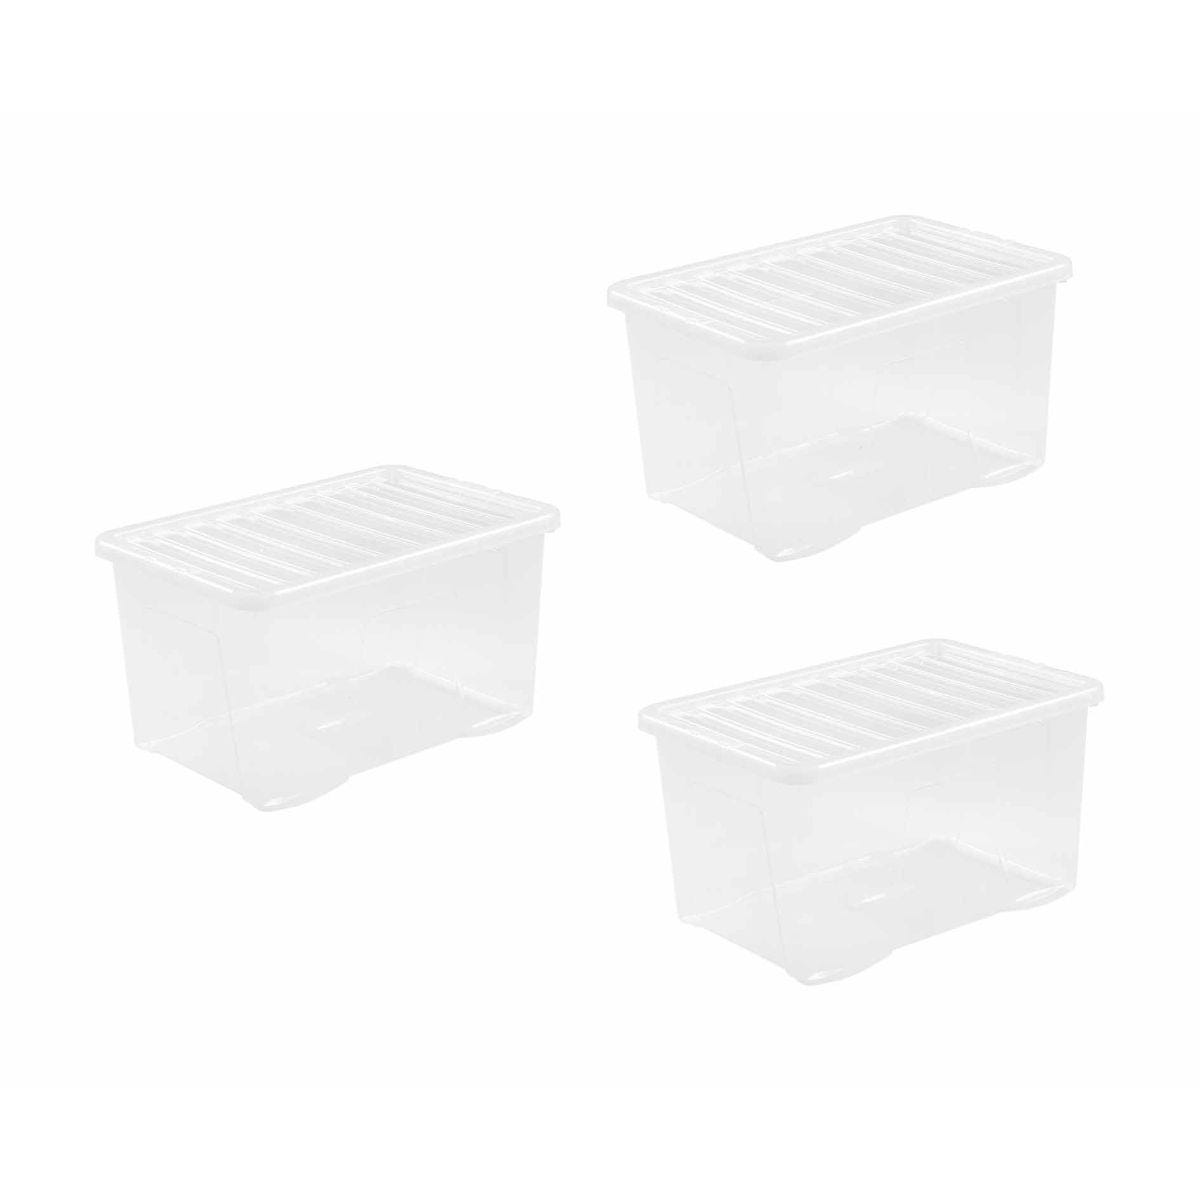 Wham Crystal Boxes 60 Litres Pack of 3 Clear